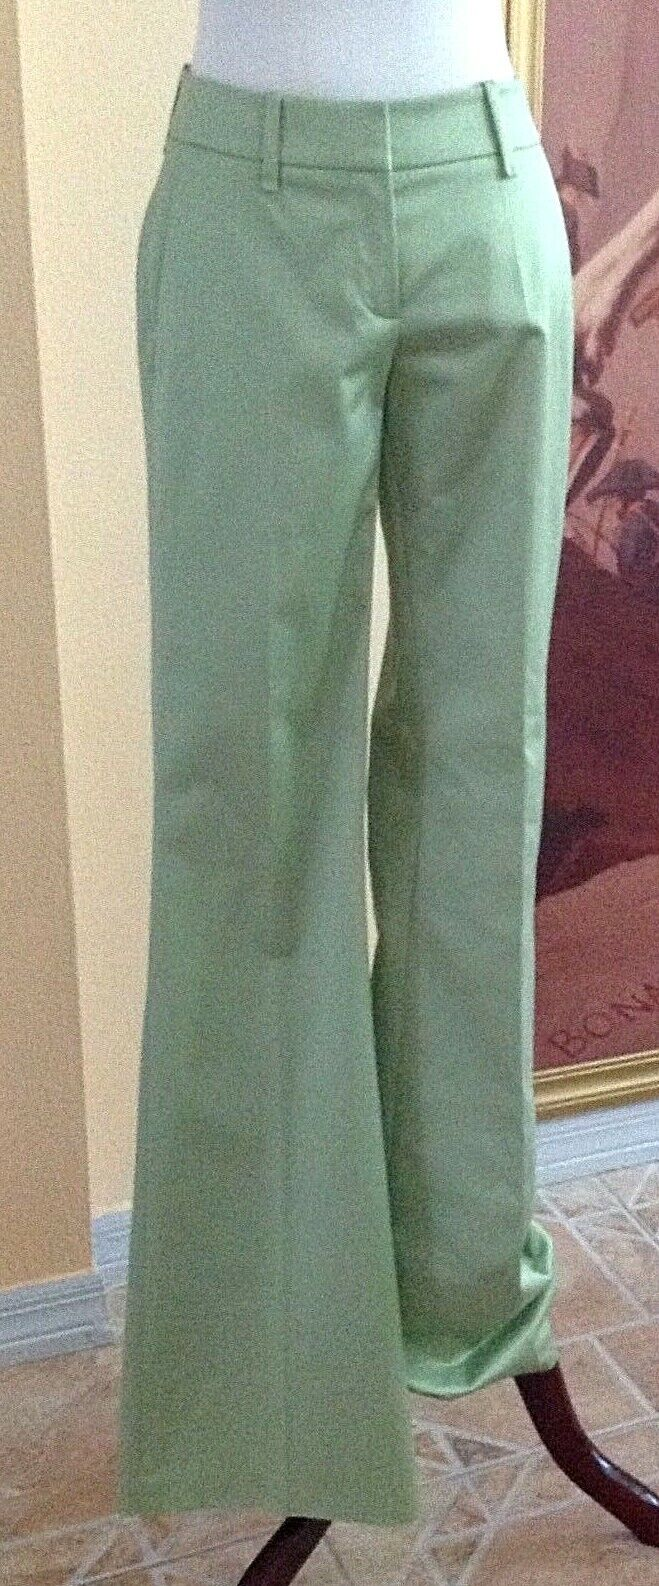 BOSS HUGO BOSS NWT Green Cotton Sateen Pleated Flared Leg Trousers Pants Size 2